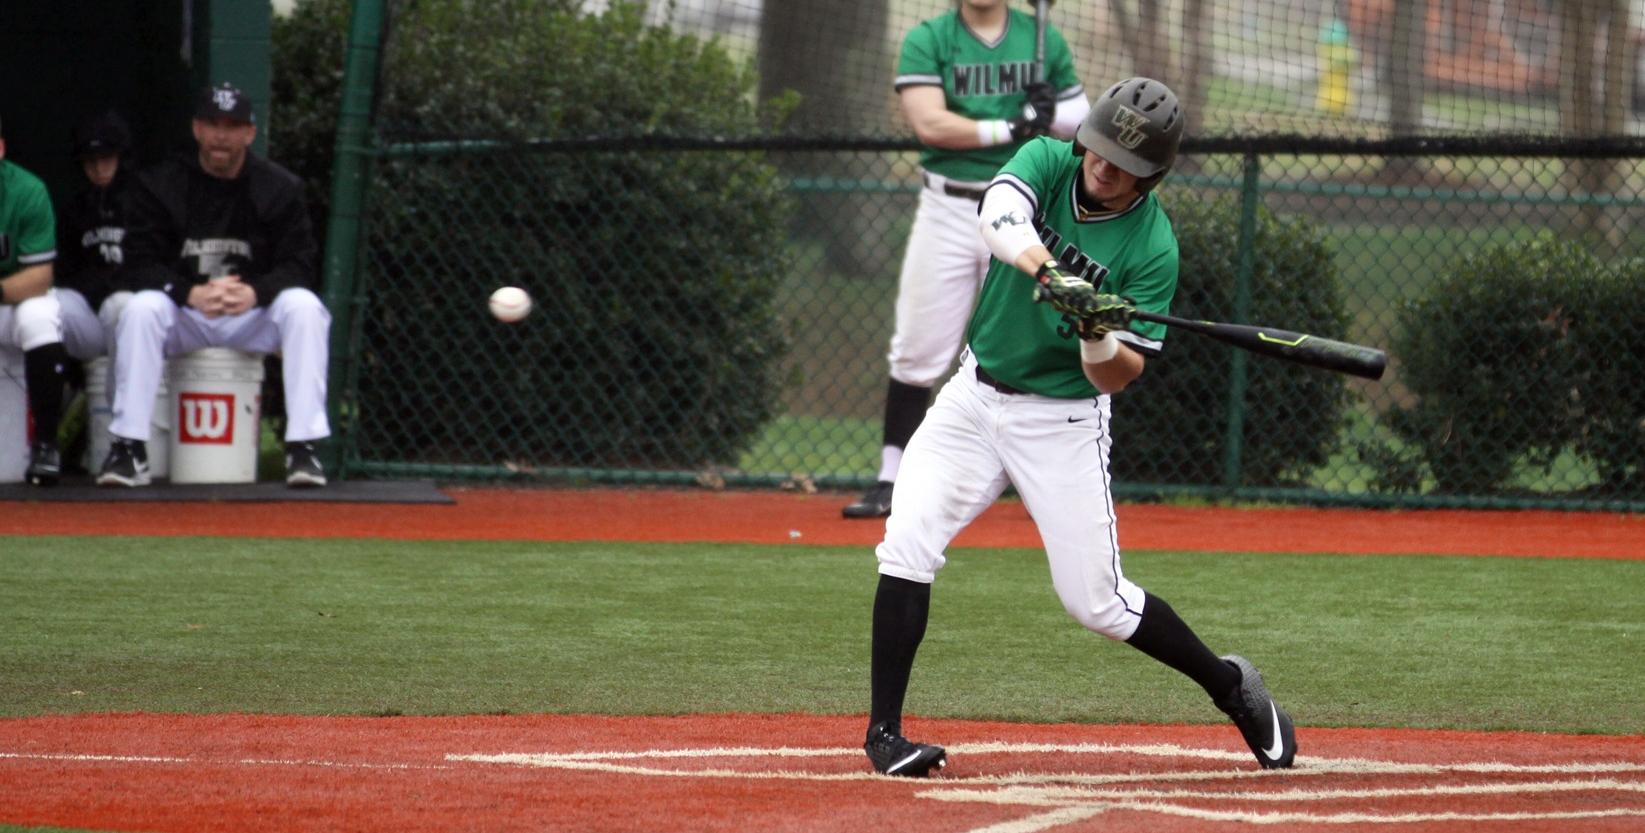 Copyright 2019; Wilmington University. All rights reserved. File photo of Max Carney who batted 4-for-5 against Florida National. Photo by Dan Lauletta. February 22, 2019 vs. Molloy at Myrtle Beach, S.C.